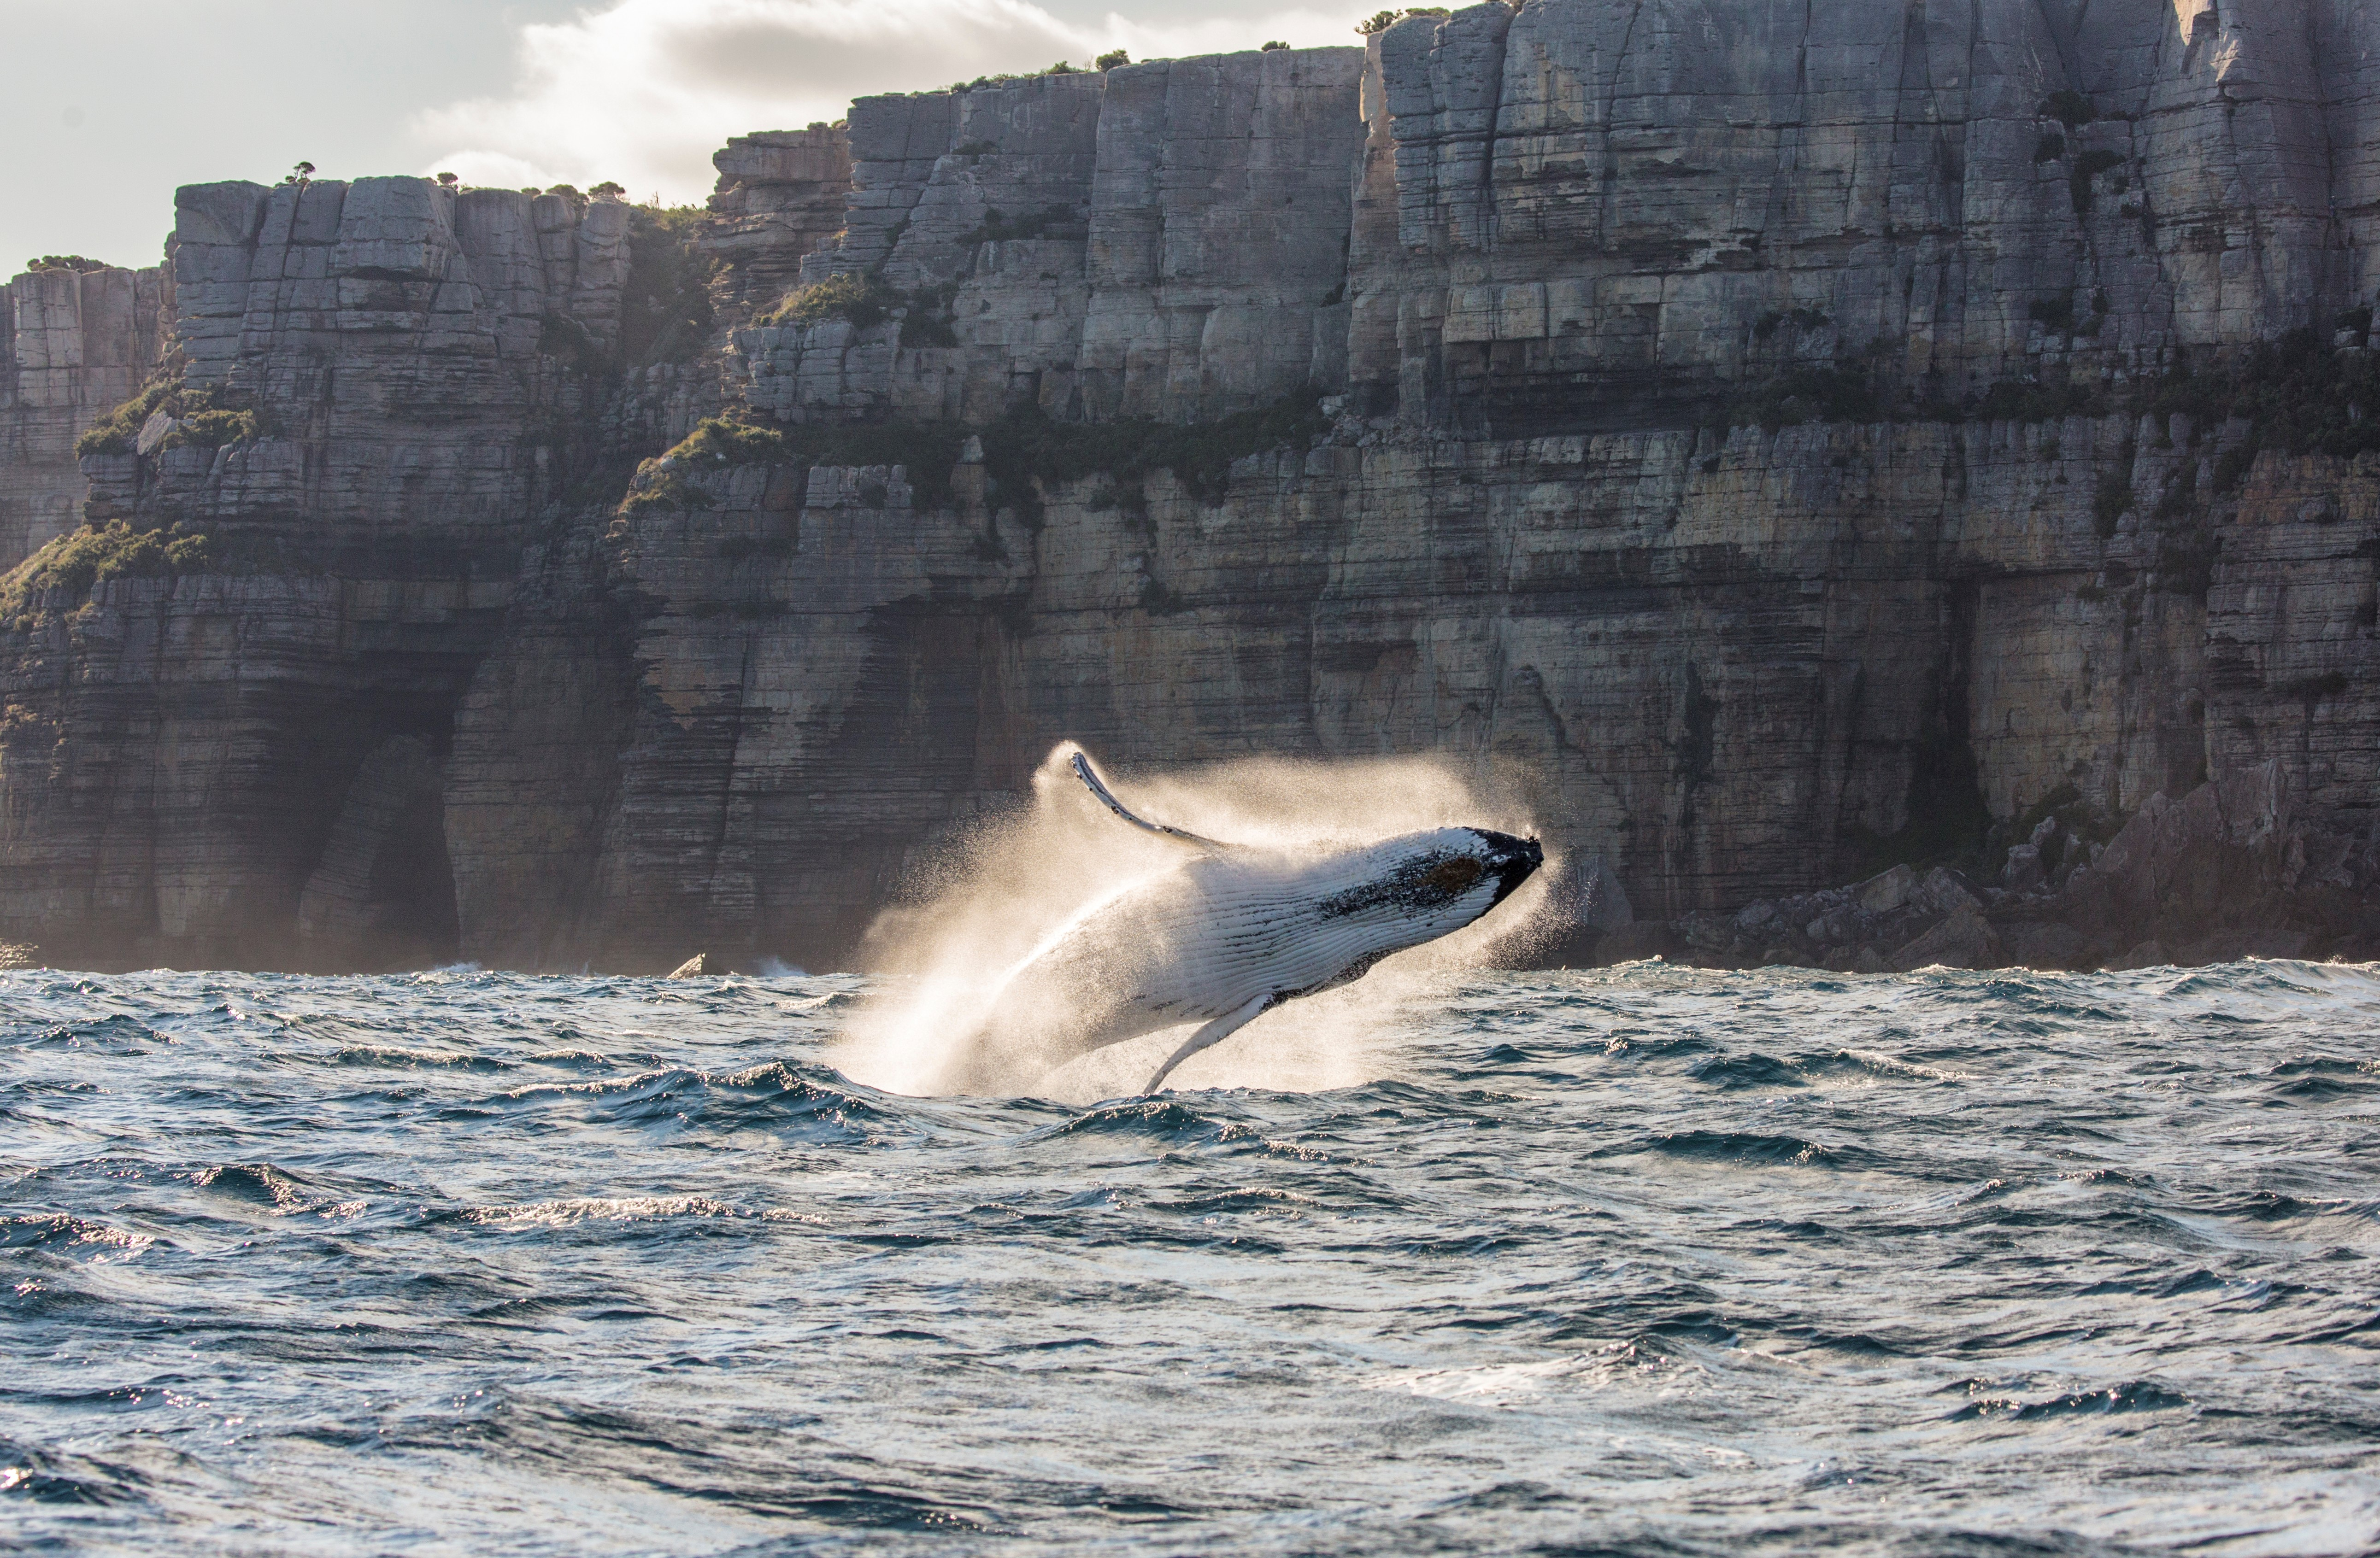 Image of a humpback whale breaching the water at Jervis Bay on the NSW South Coast